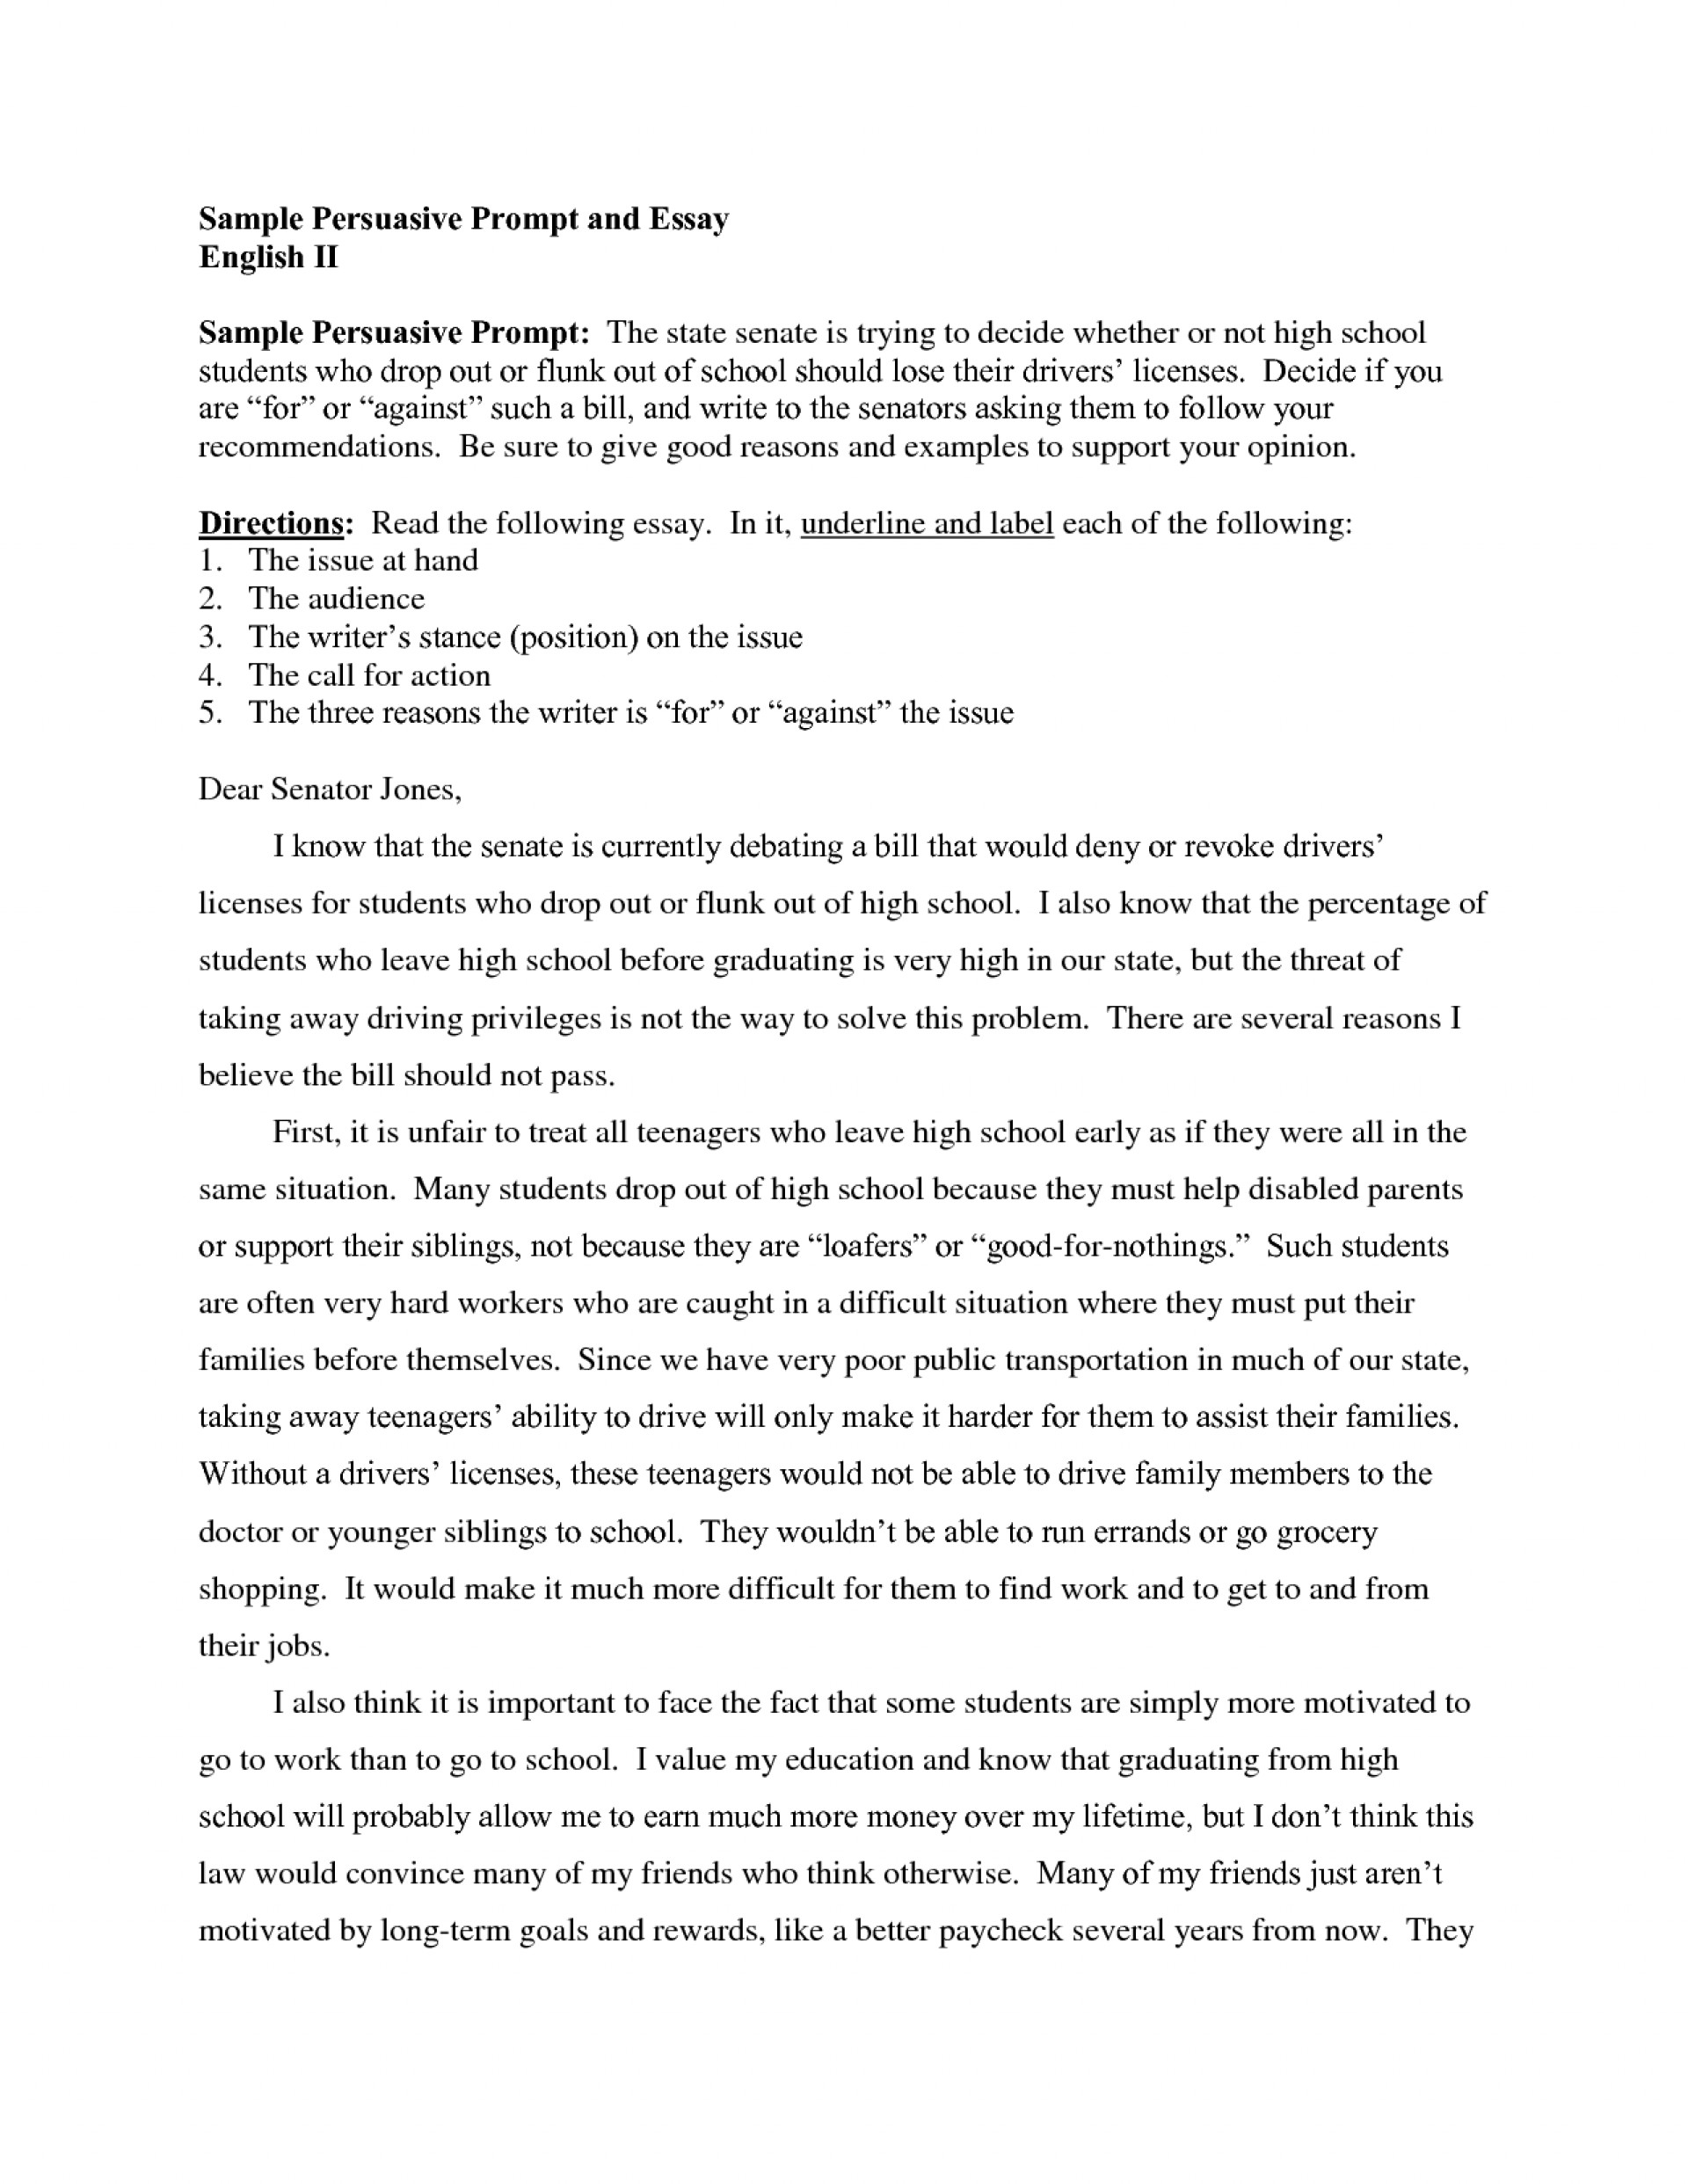 013 Research Paper Easy Topic Persuasive Essay Topics For High School Sample Ideas Highschool Students Good Prompt Funny Fun List Of Seniors Writing English Sensational To Write About Psychology American History 1920